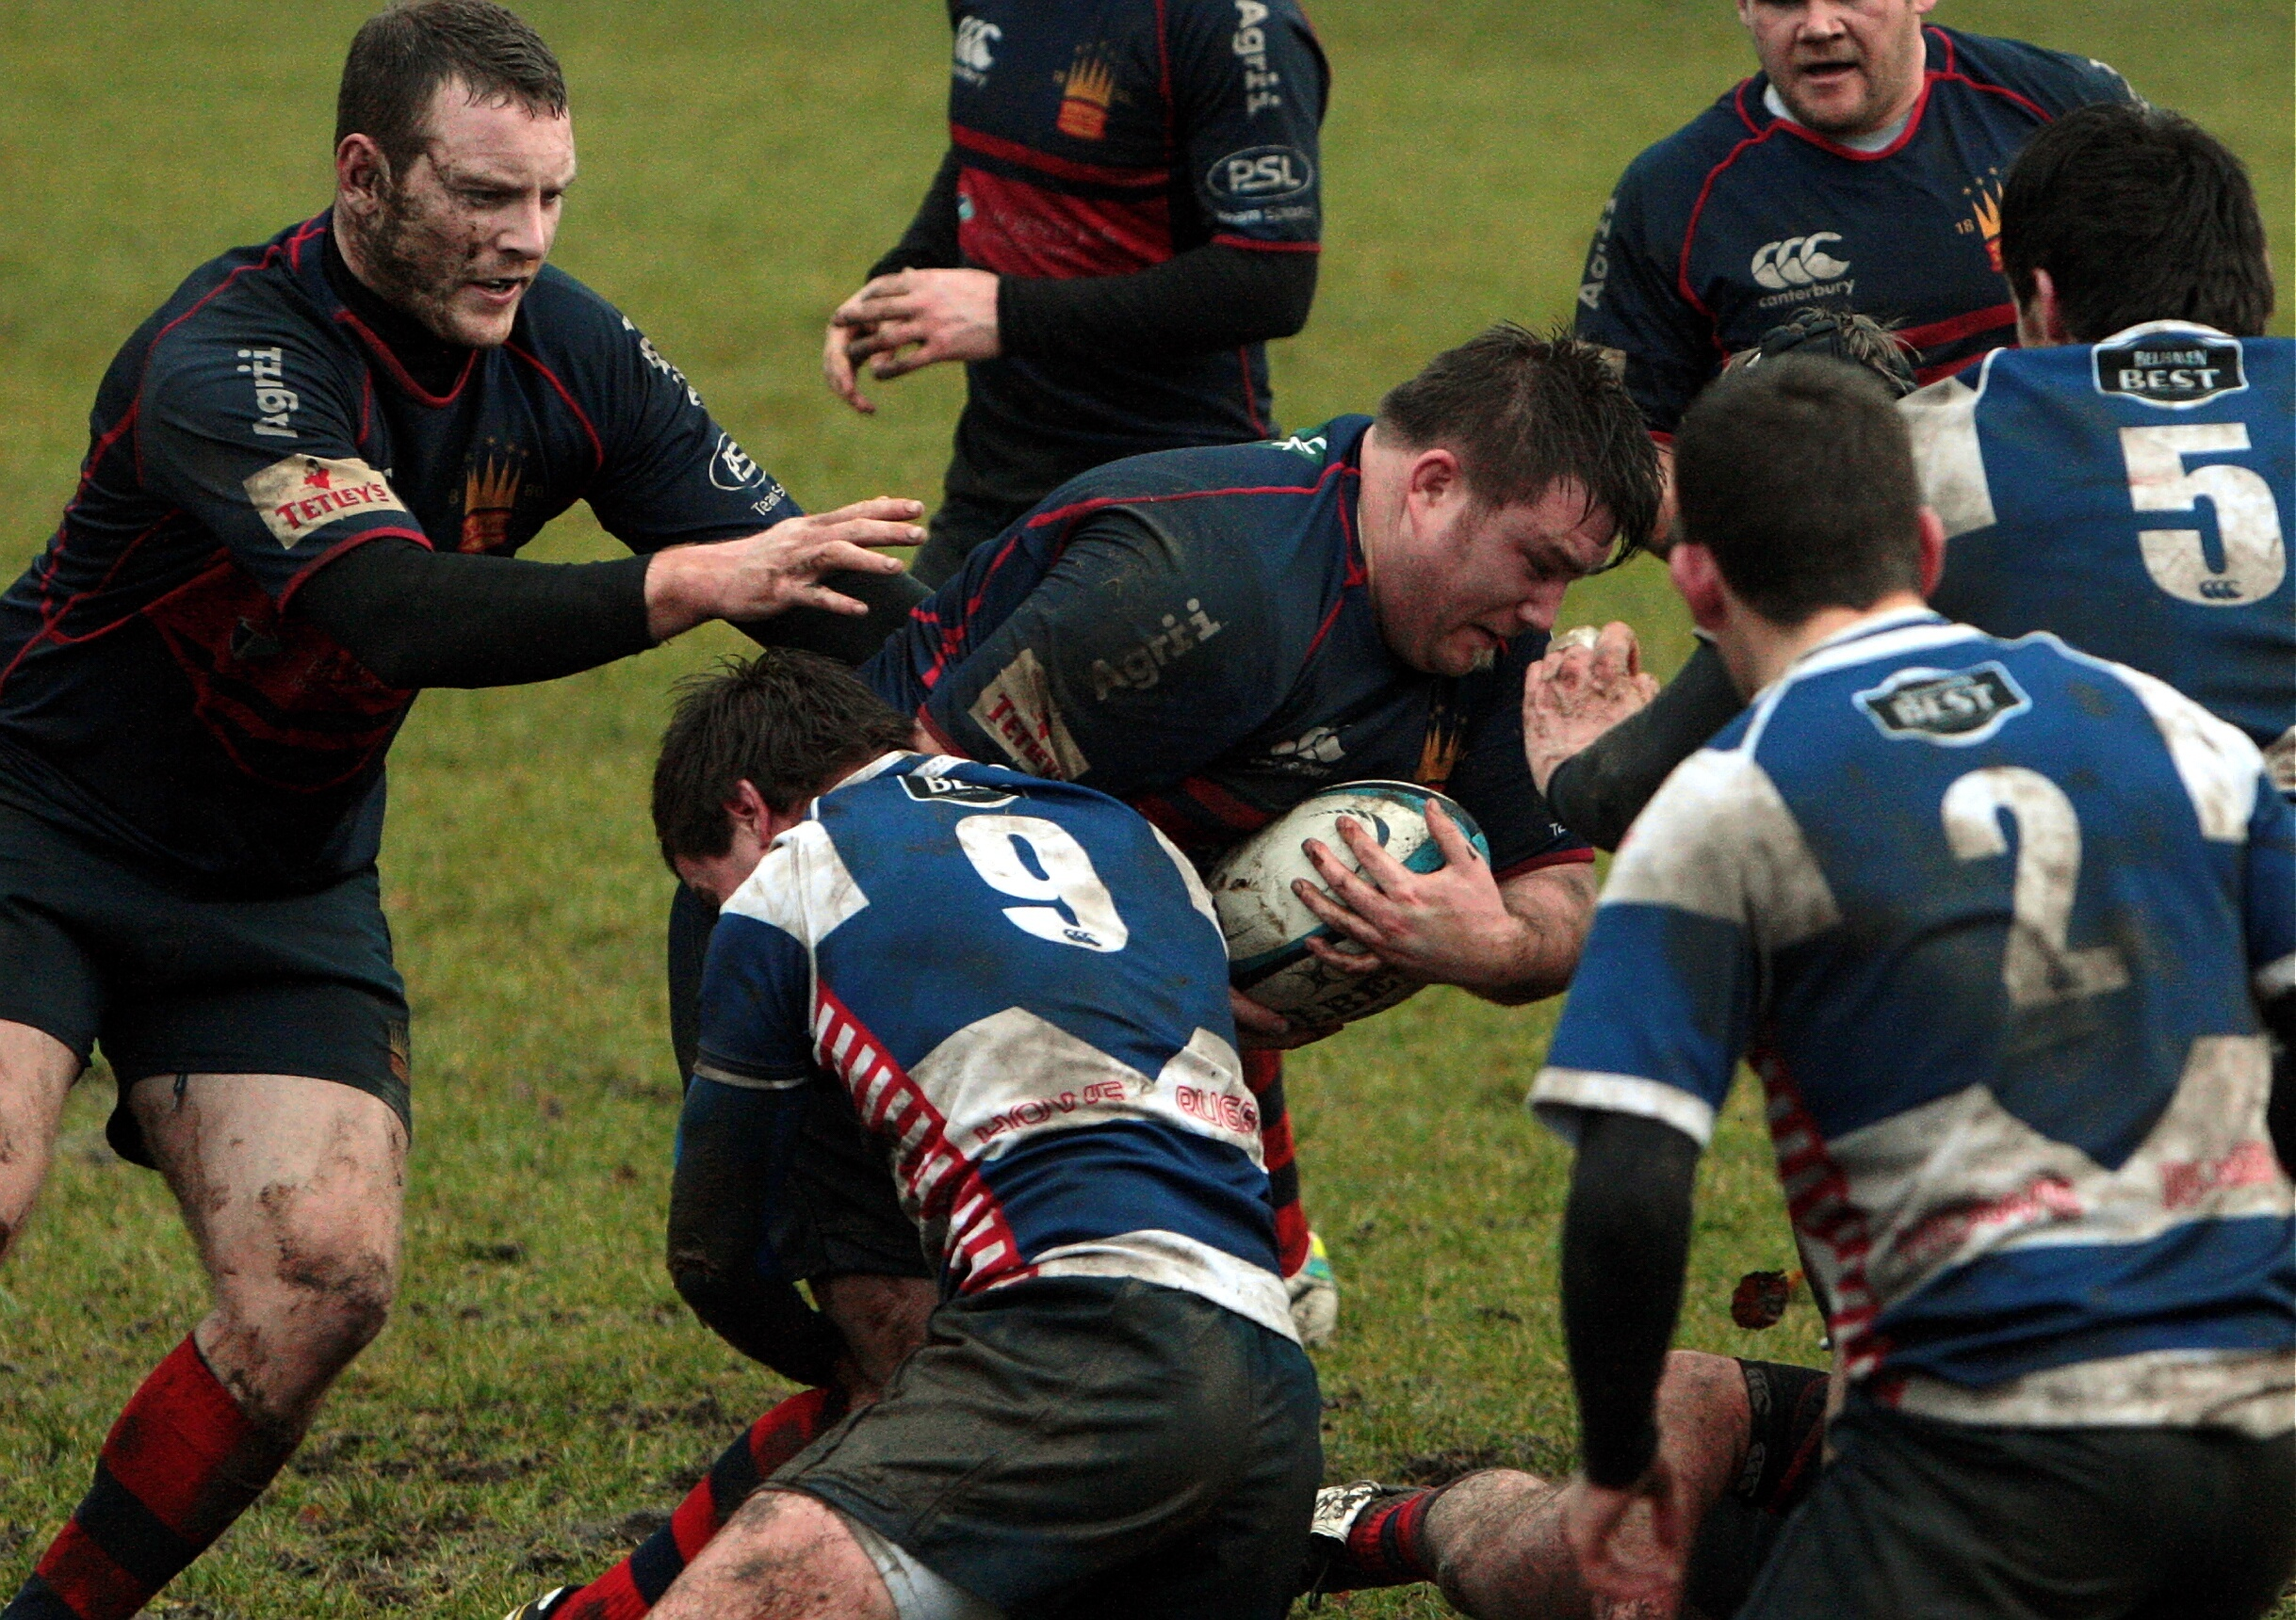 Experienced prop Neil Dymock had a big game for Dundee High against Hamilton.